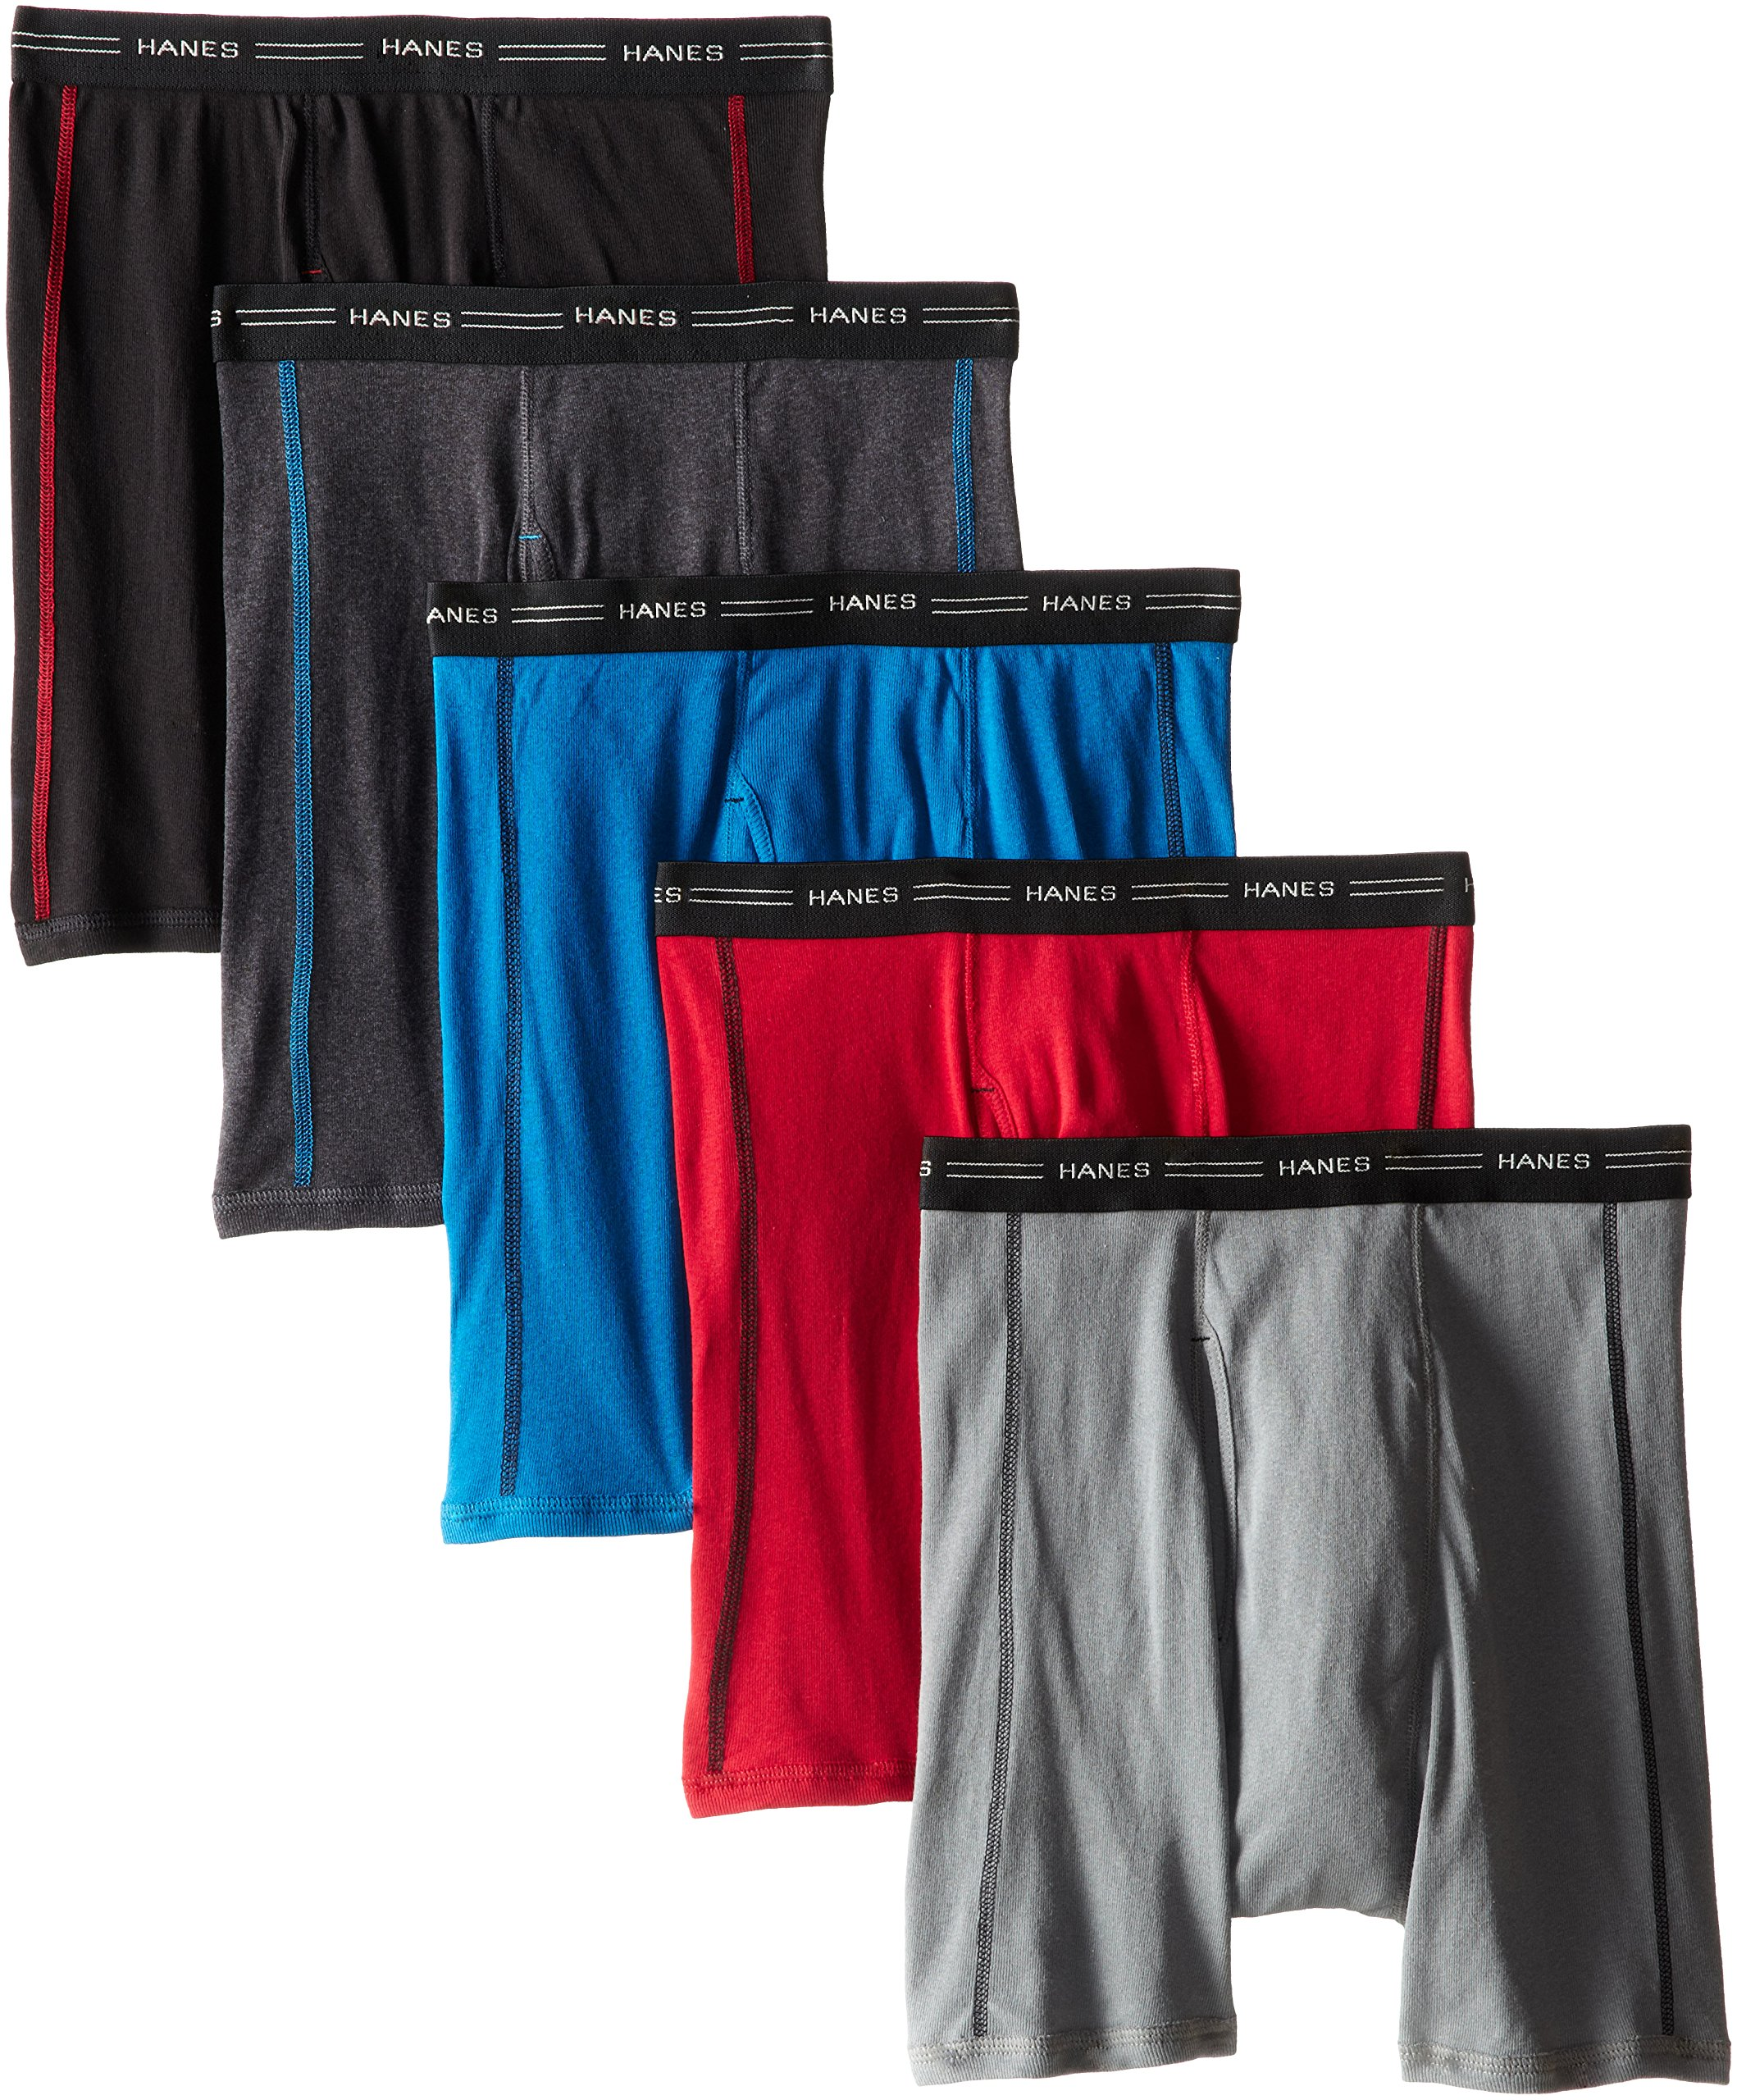 Hanes Men's 5-Pack Sports-Inspired Boxer Brief , Assorted, Large by Hanes